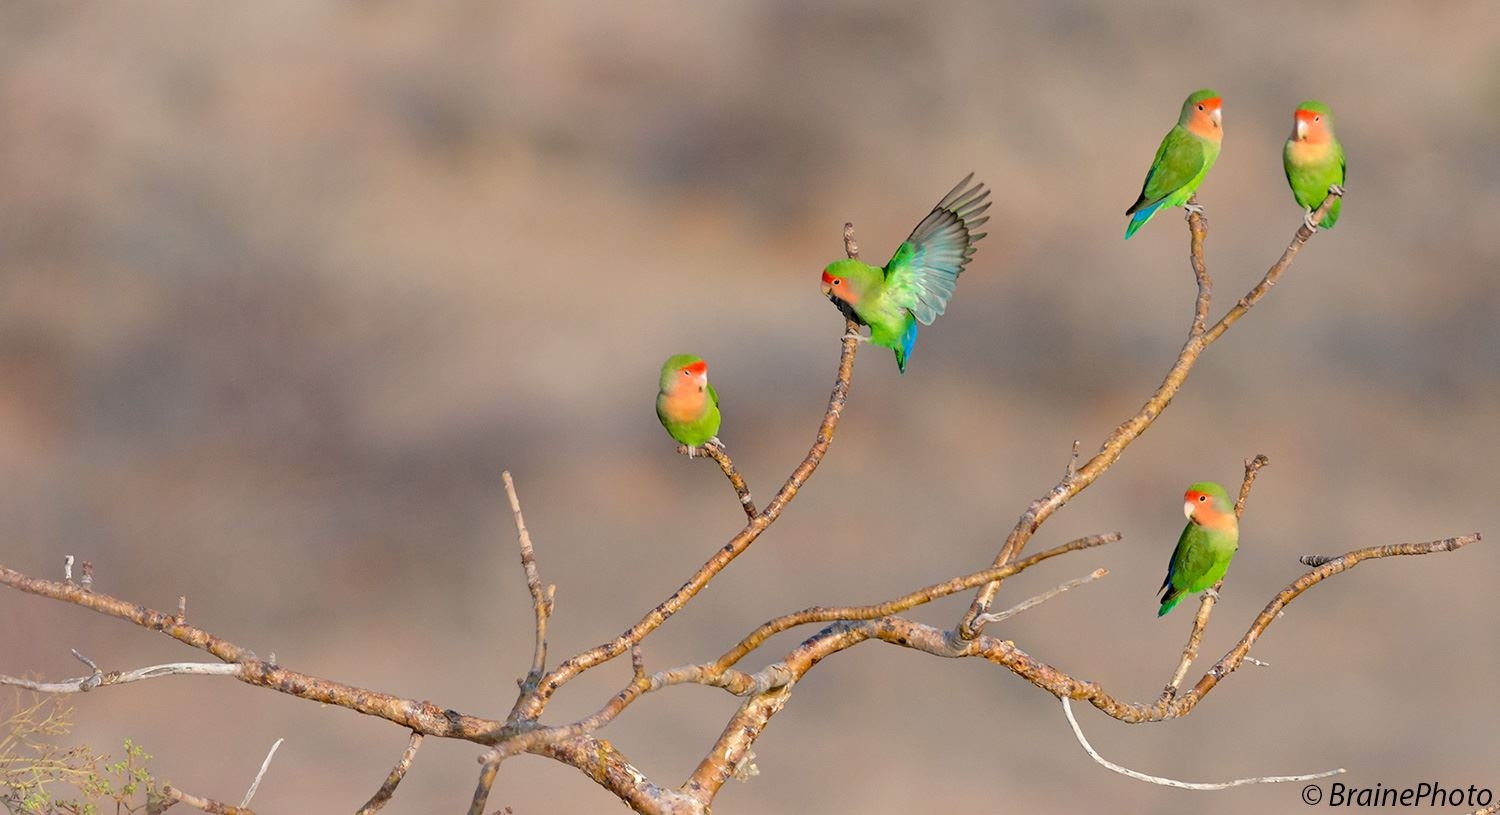 One of our desert day tours features the spectacular Spitzkoppe, a paradise for photographers, birders and herpetologists. The Rosy-faced Lovebird is one of the main targets on this tour.